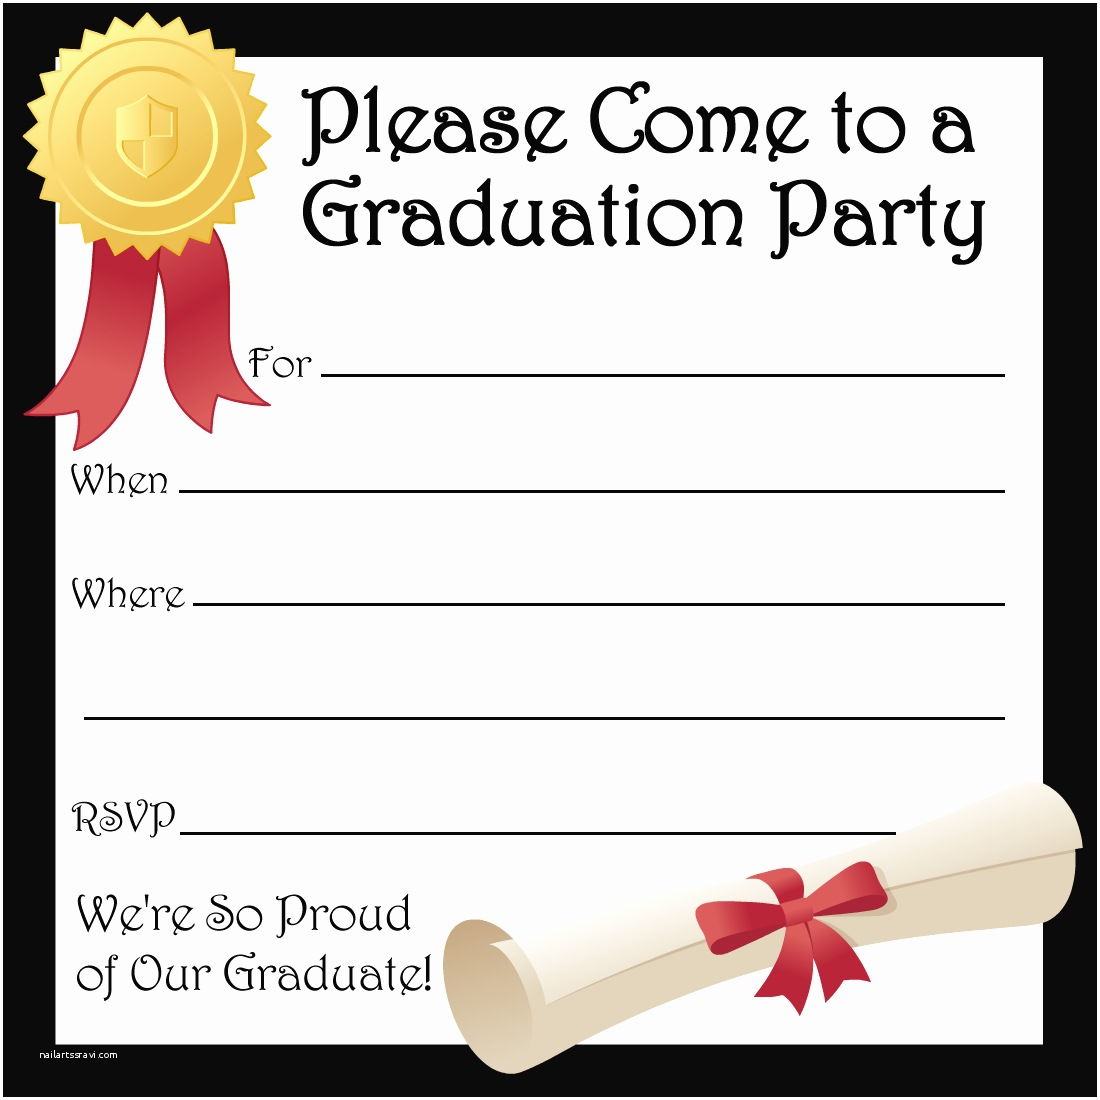 Graduation Party Invitations Free Printable Graduation Party Invitations